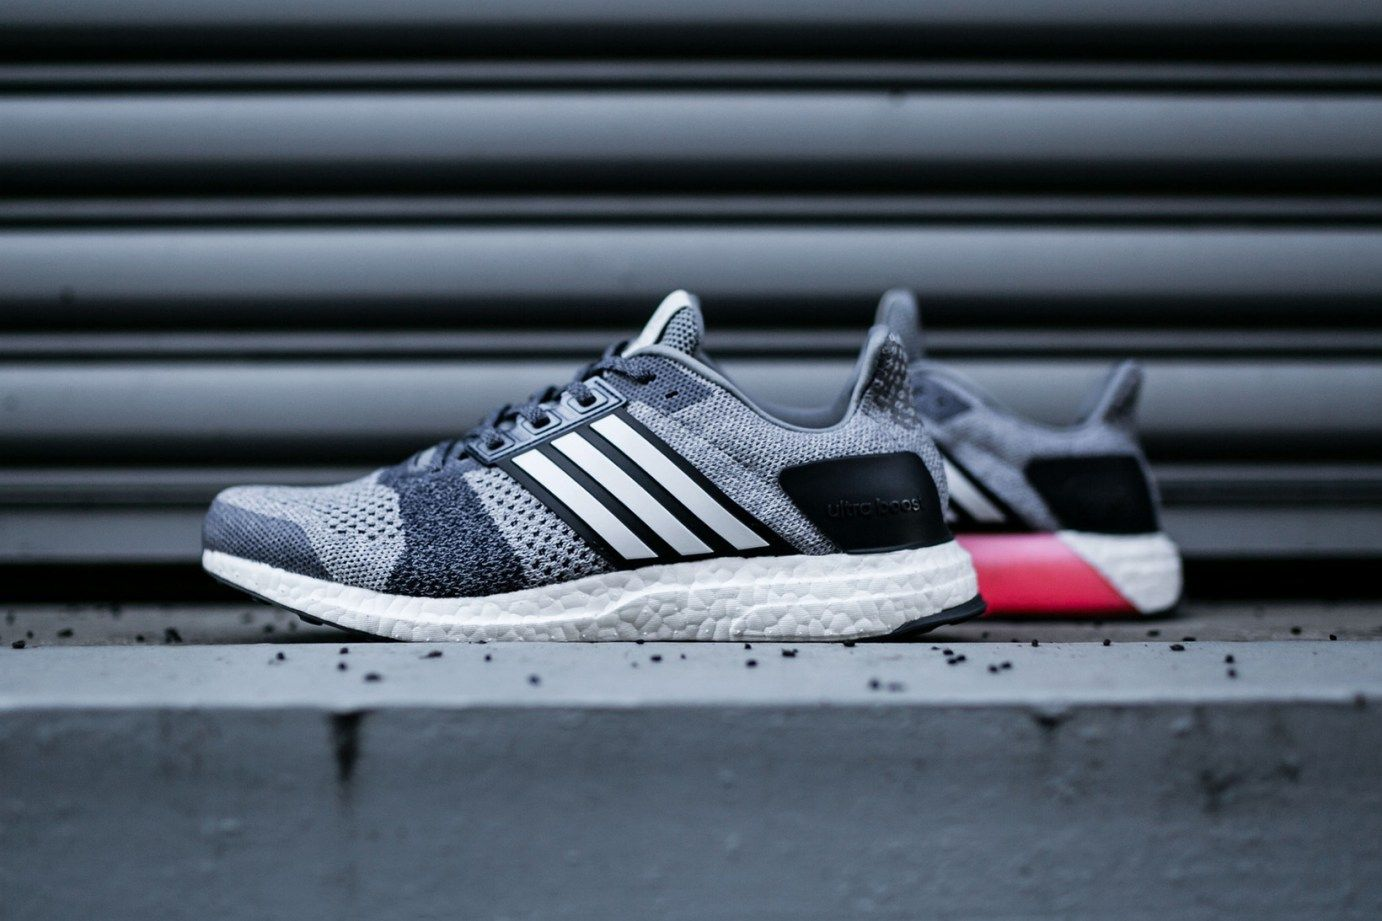 The adidas UltraBOOST ST Returns in a